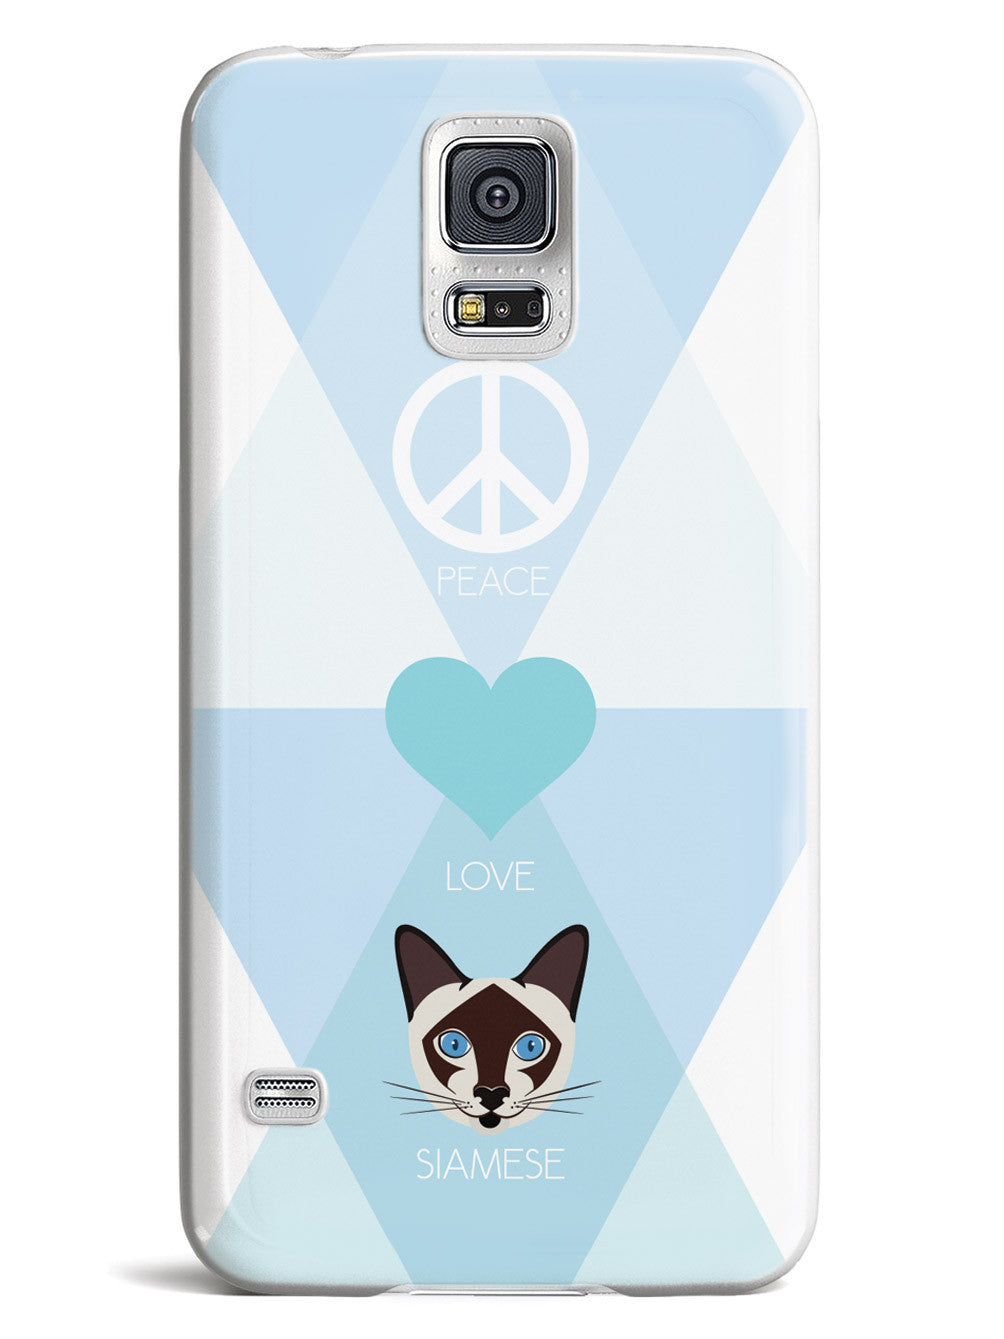 Peace, Love & Siamese Cats Case